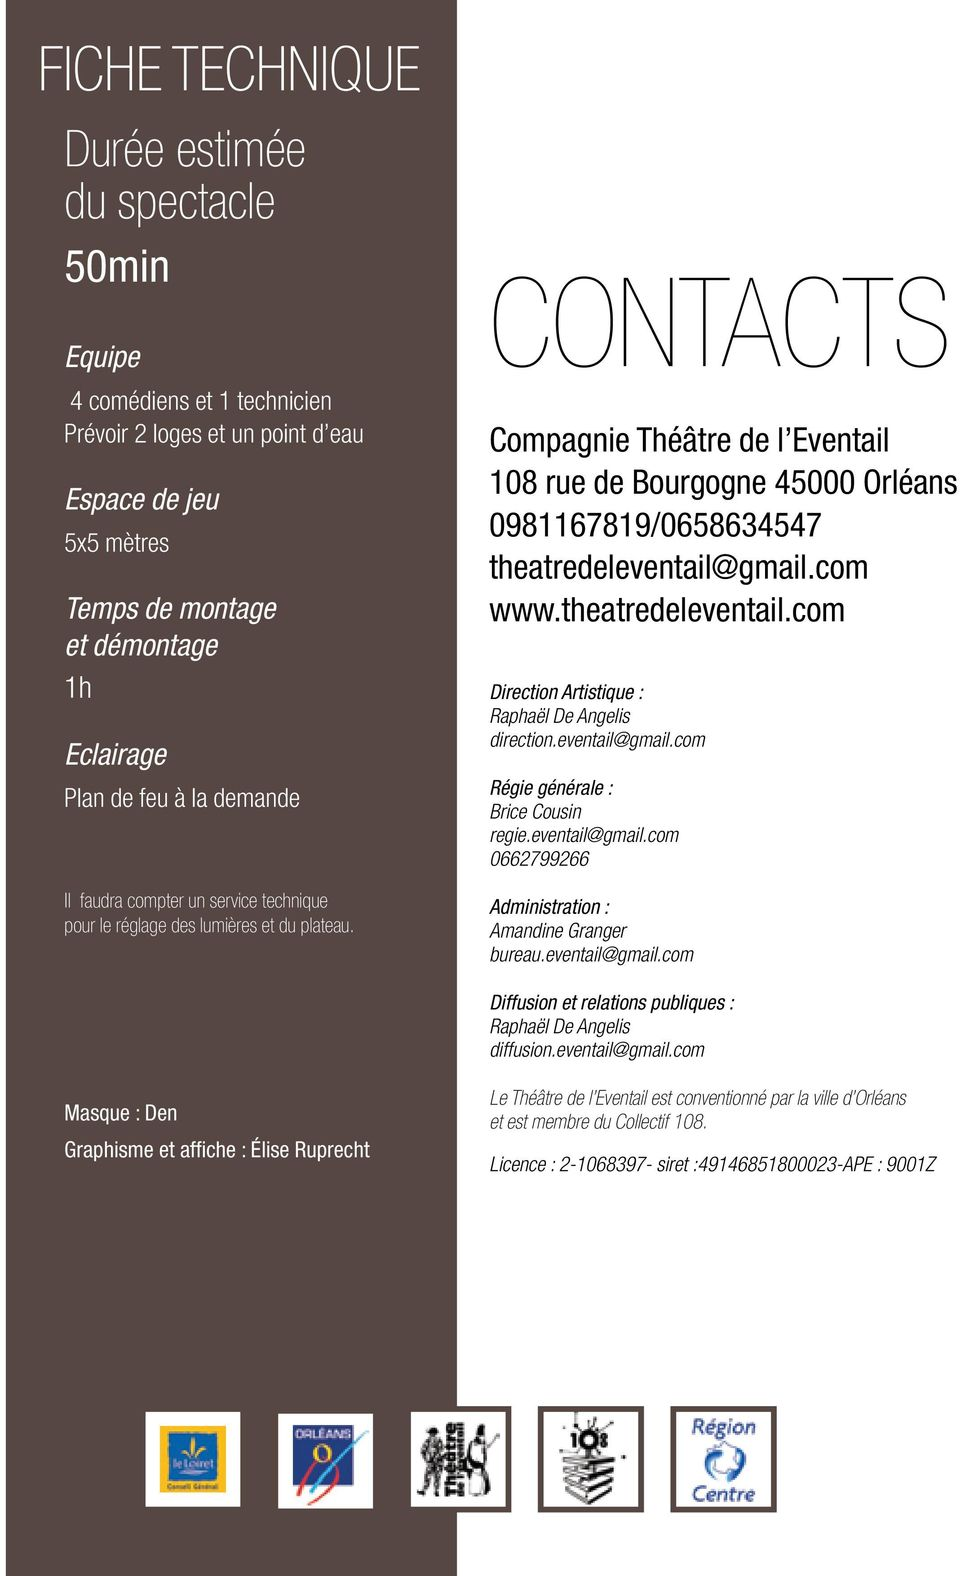 CONTACTS Compagnie Théâtre de l Eventail 108 rue de Bourgogne 45000 Orléans 0981167819/0658634547 theatredeleventail@gmail.com www.theatredeleventail.com Direction Artistique : Raphaël De Angelis direction.